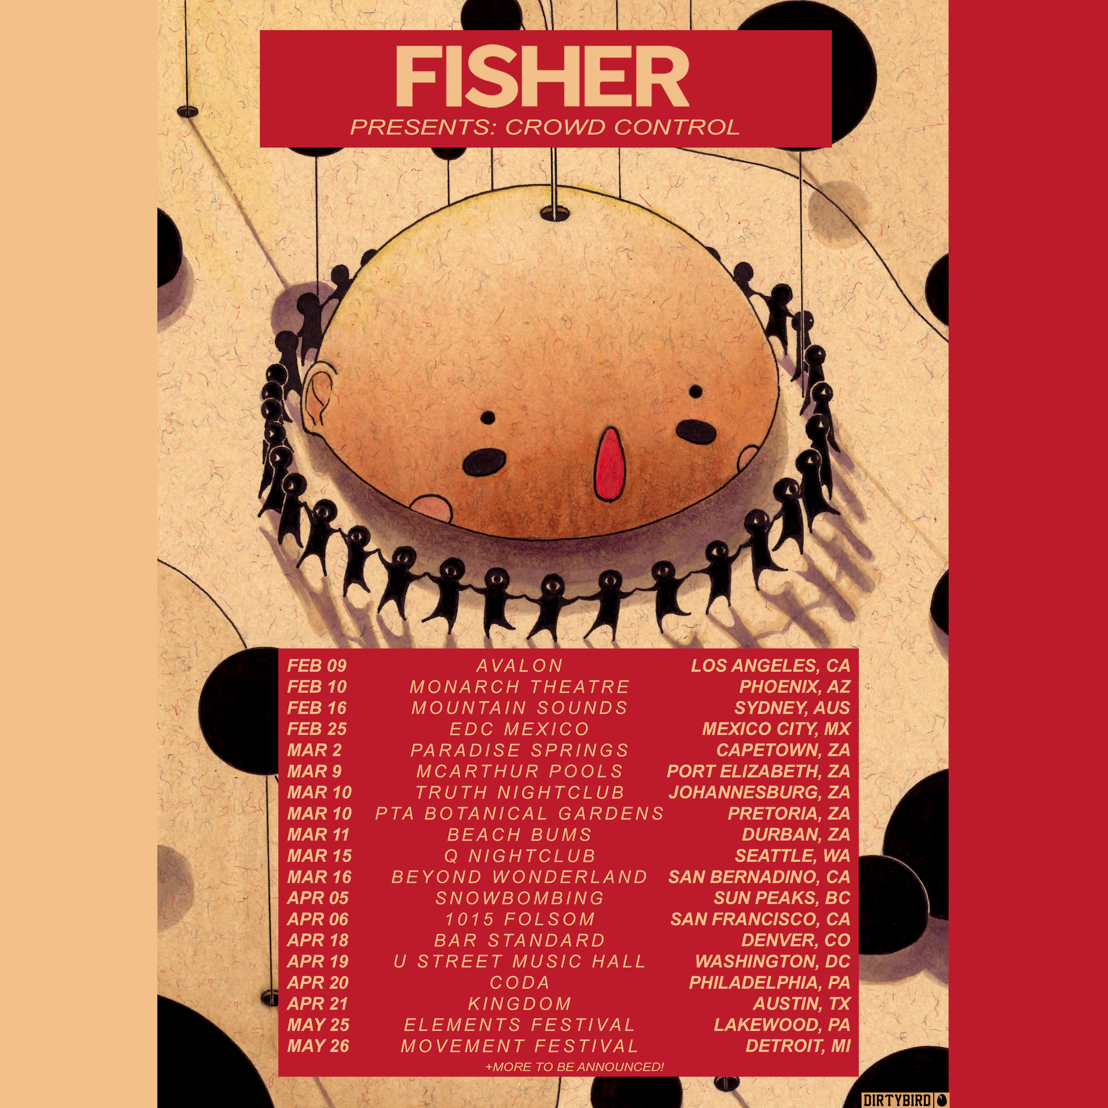 FISHER Returns To DIRTYBIRD With Crowd Control